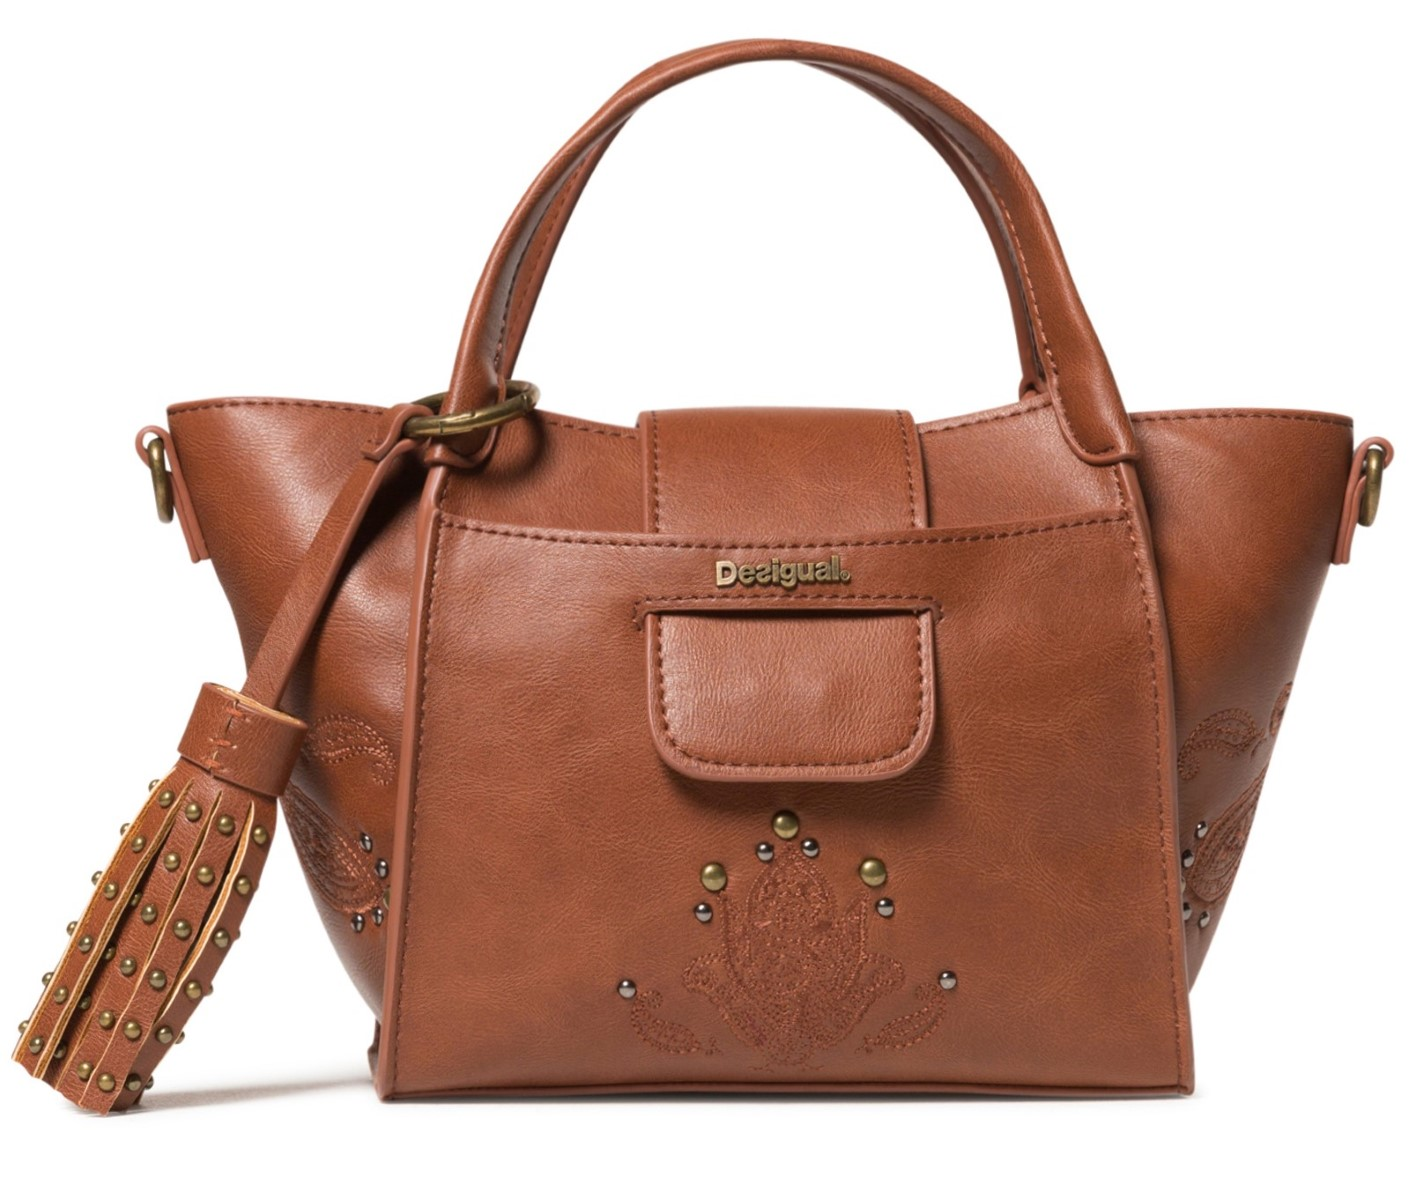 Desigual Small Brown Handbag Bols Soft Henna Zaria Baby